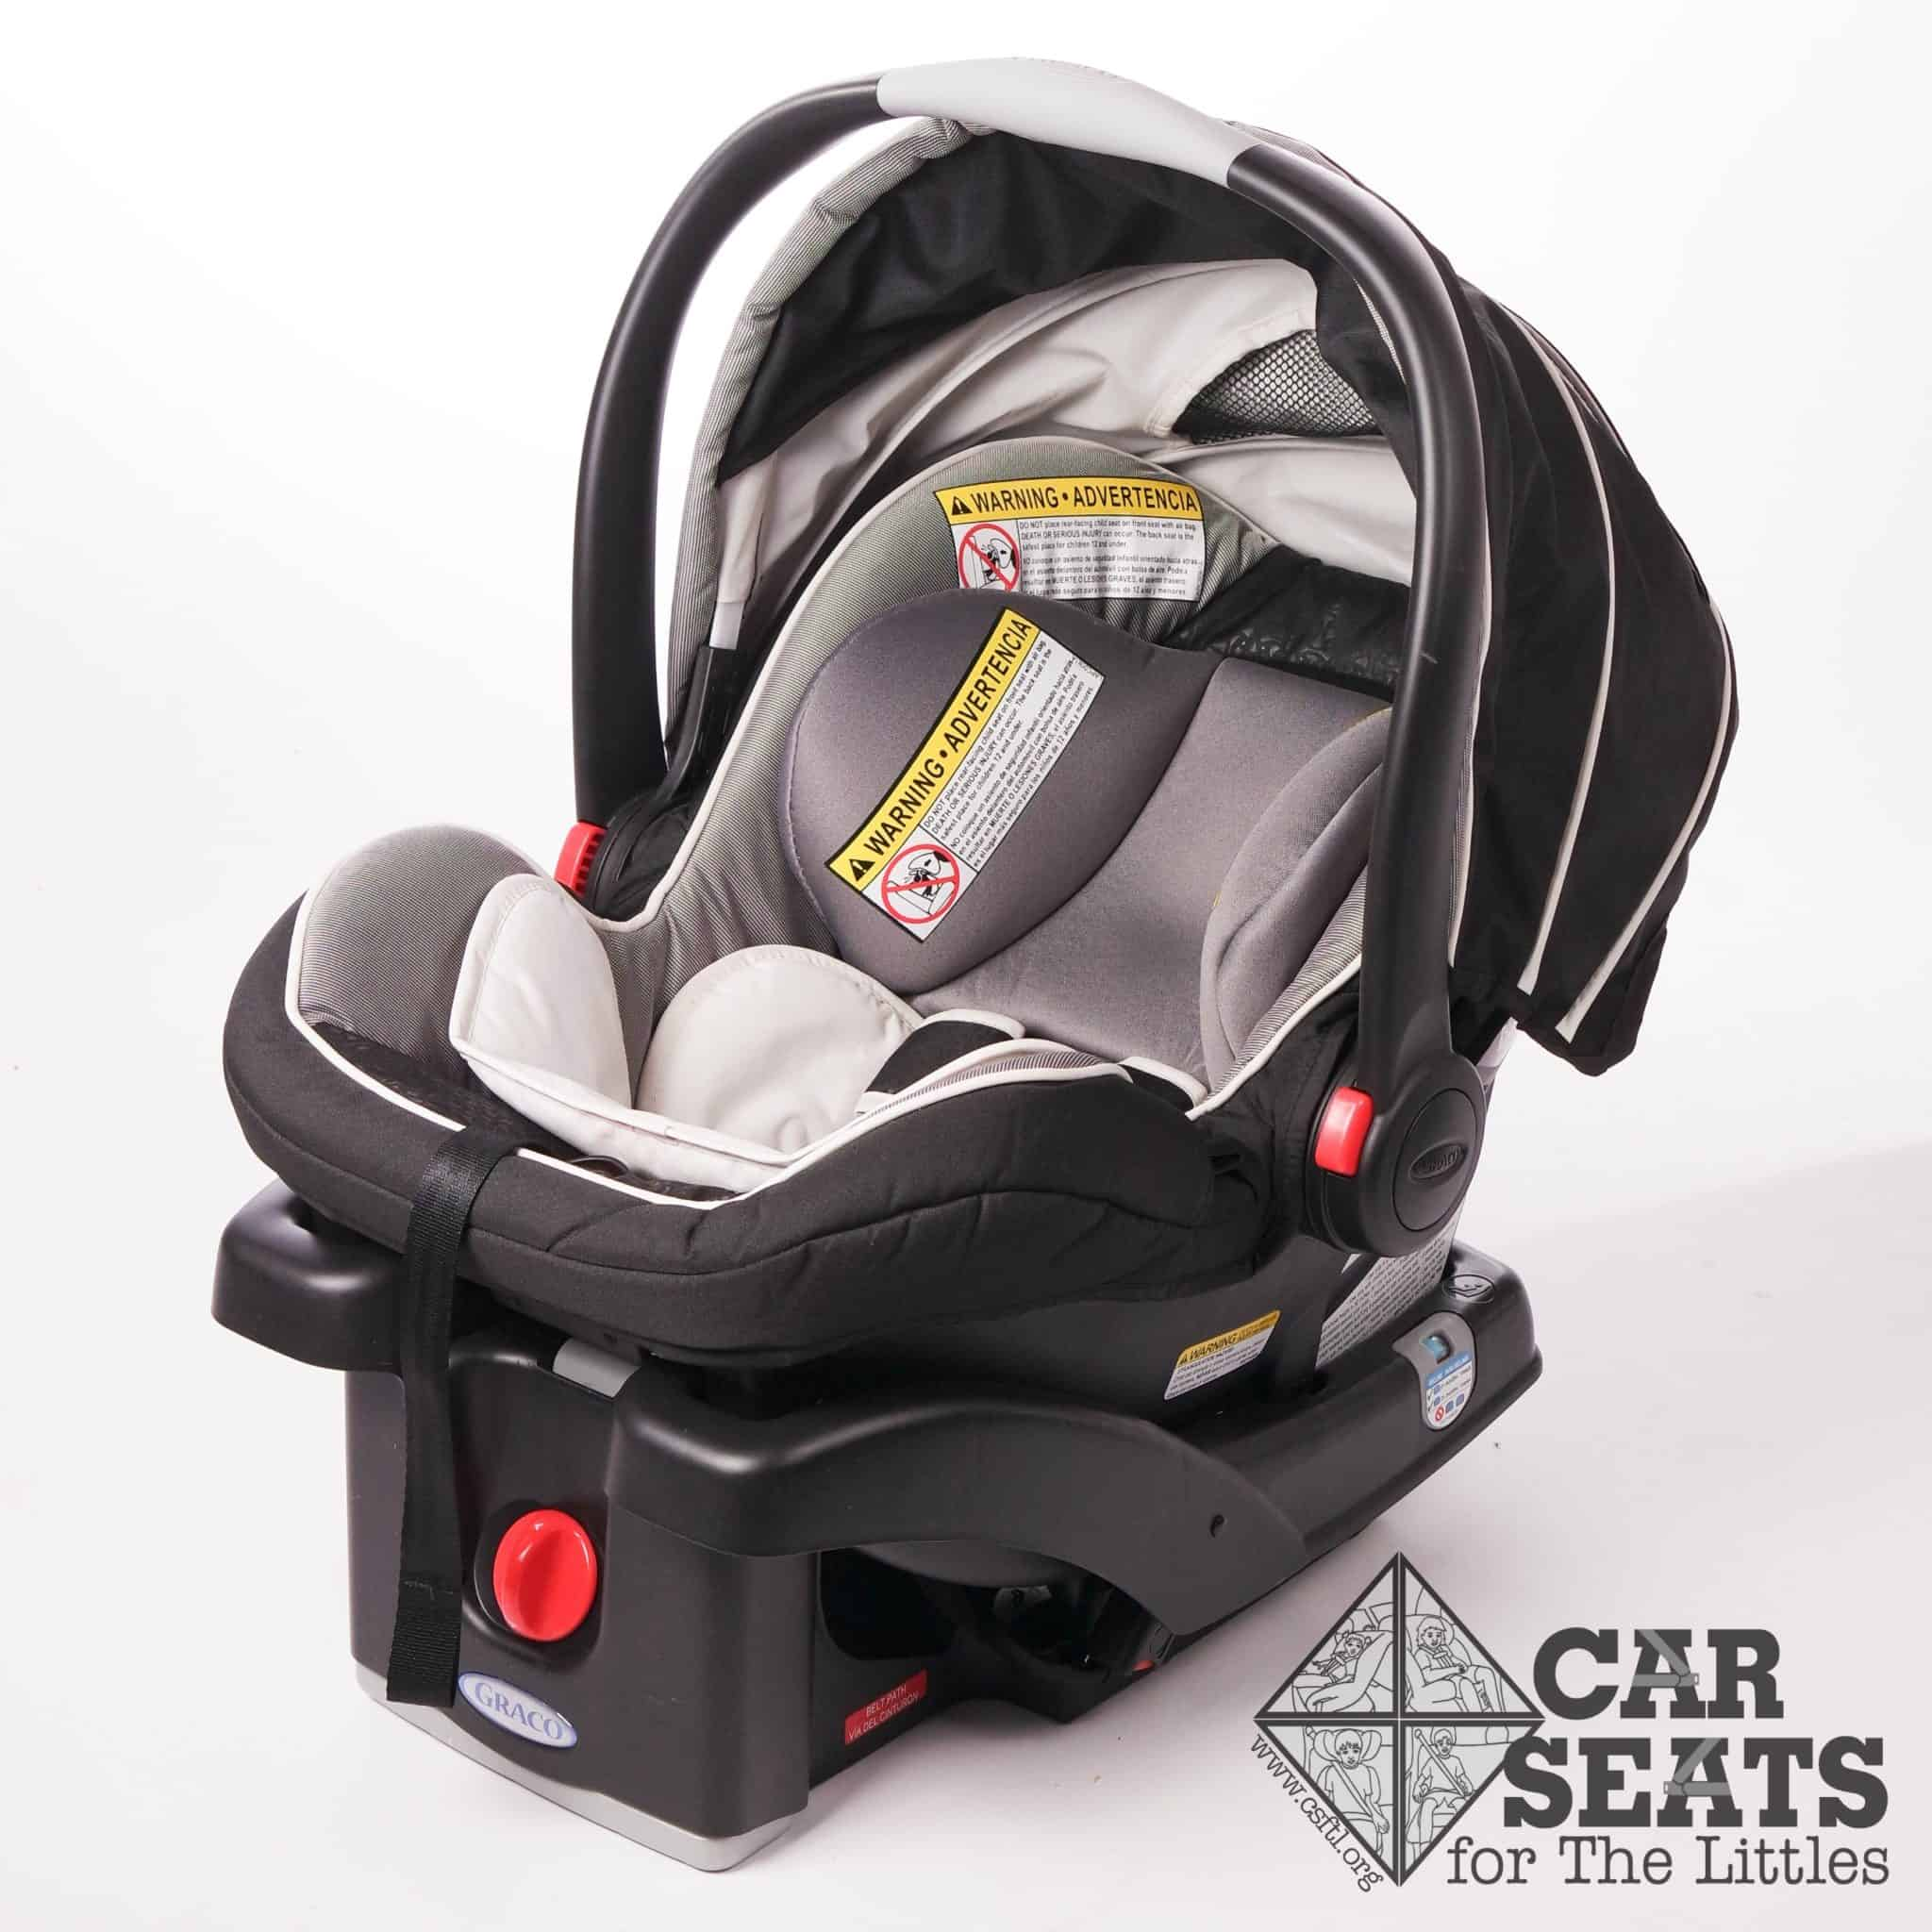 Graco+Car+Seat+Expiration+Date Graco car seat expiration dates